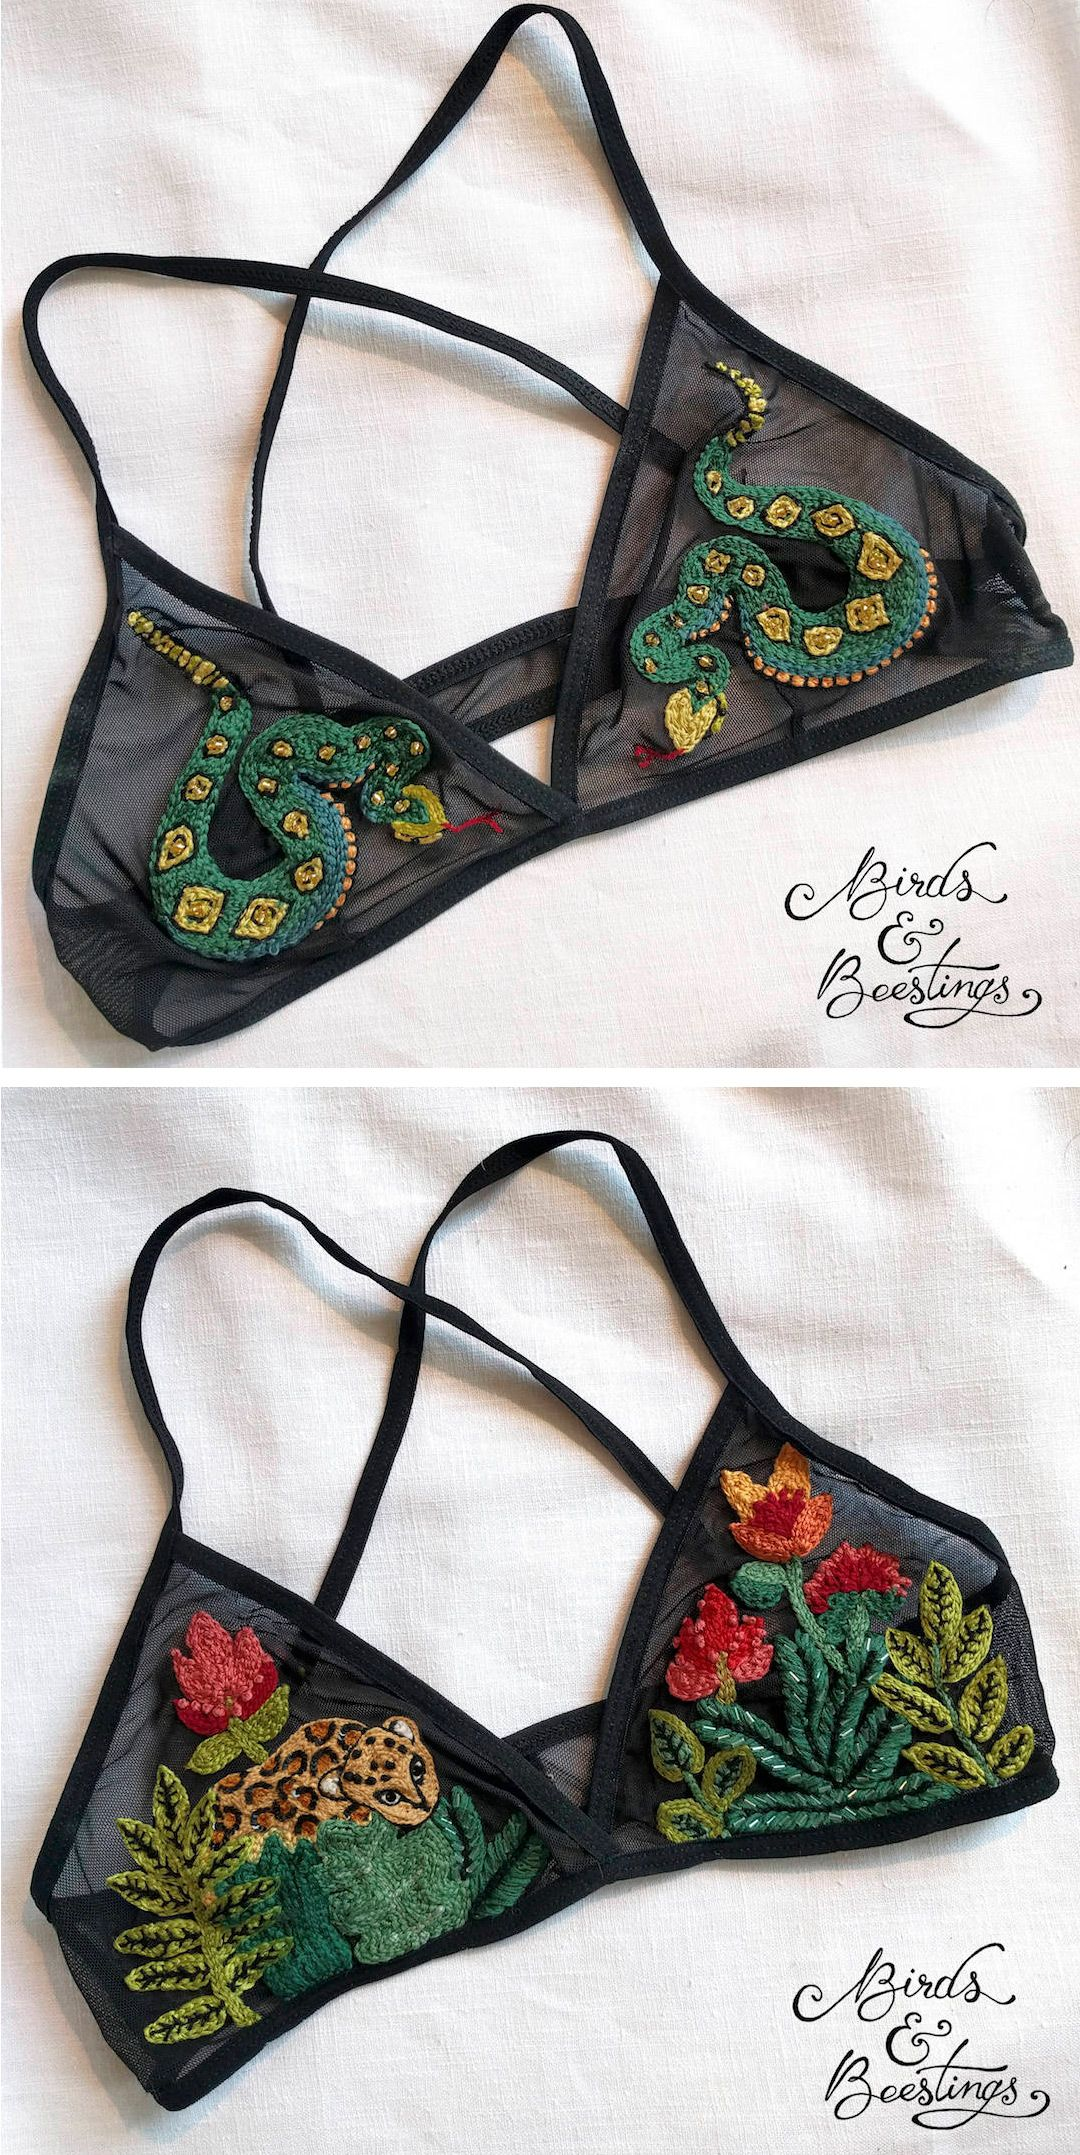 49517a1651eca3 Embroidered bralettes by Birds   Beestings    bespoke bras    bespoke  fashion    hand embroidery